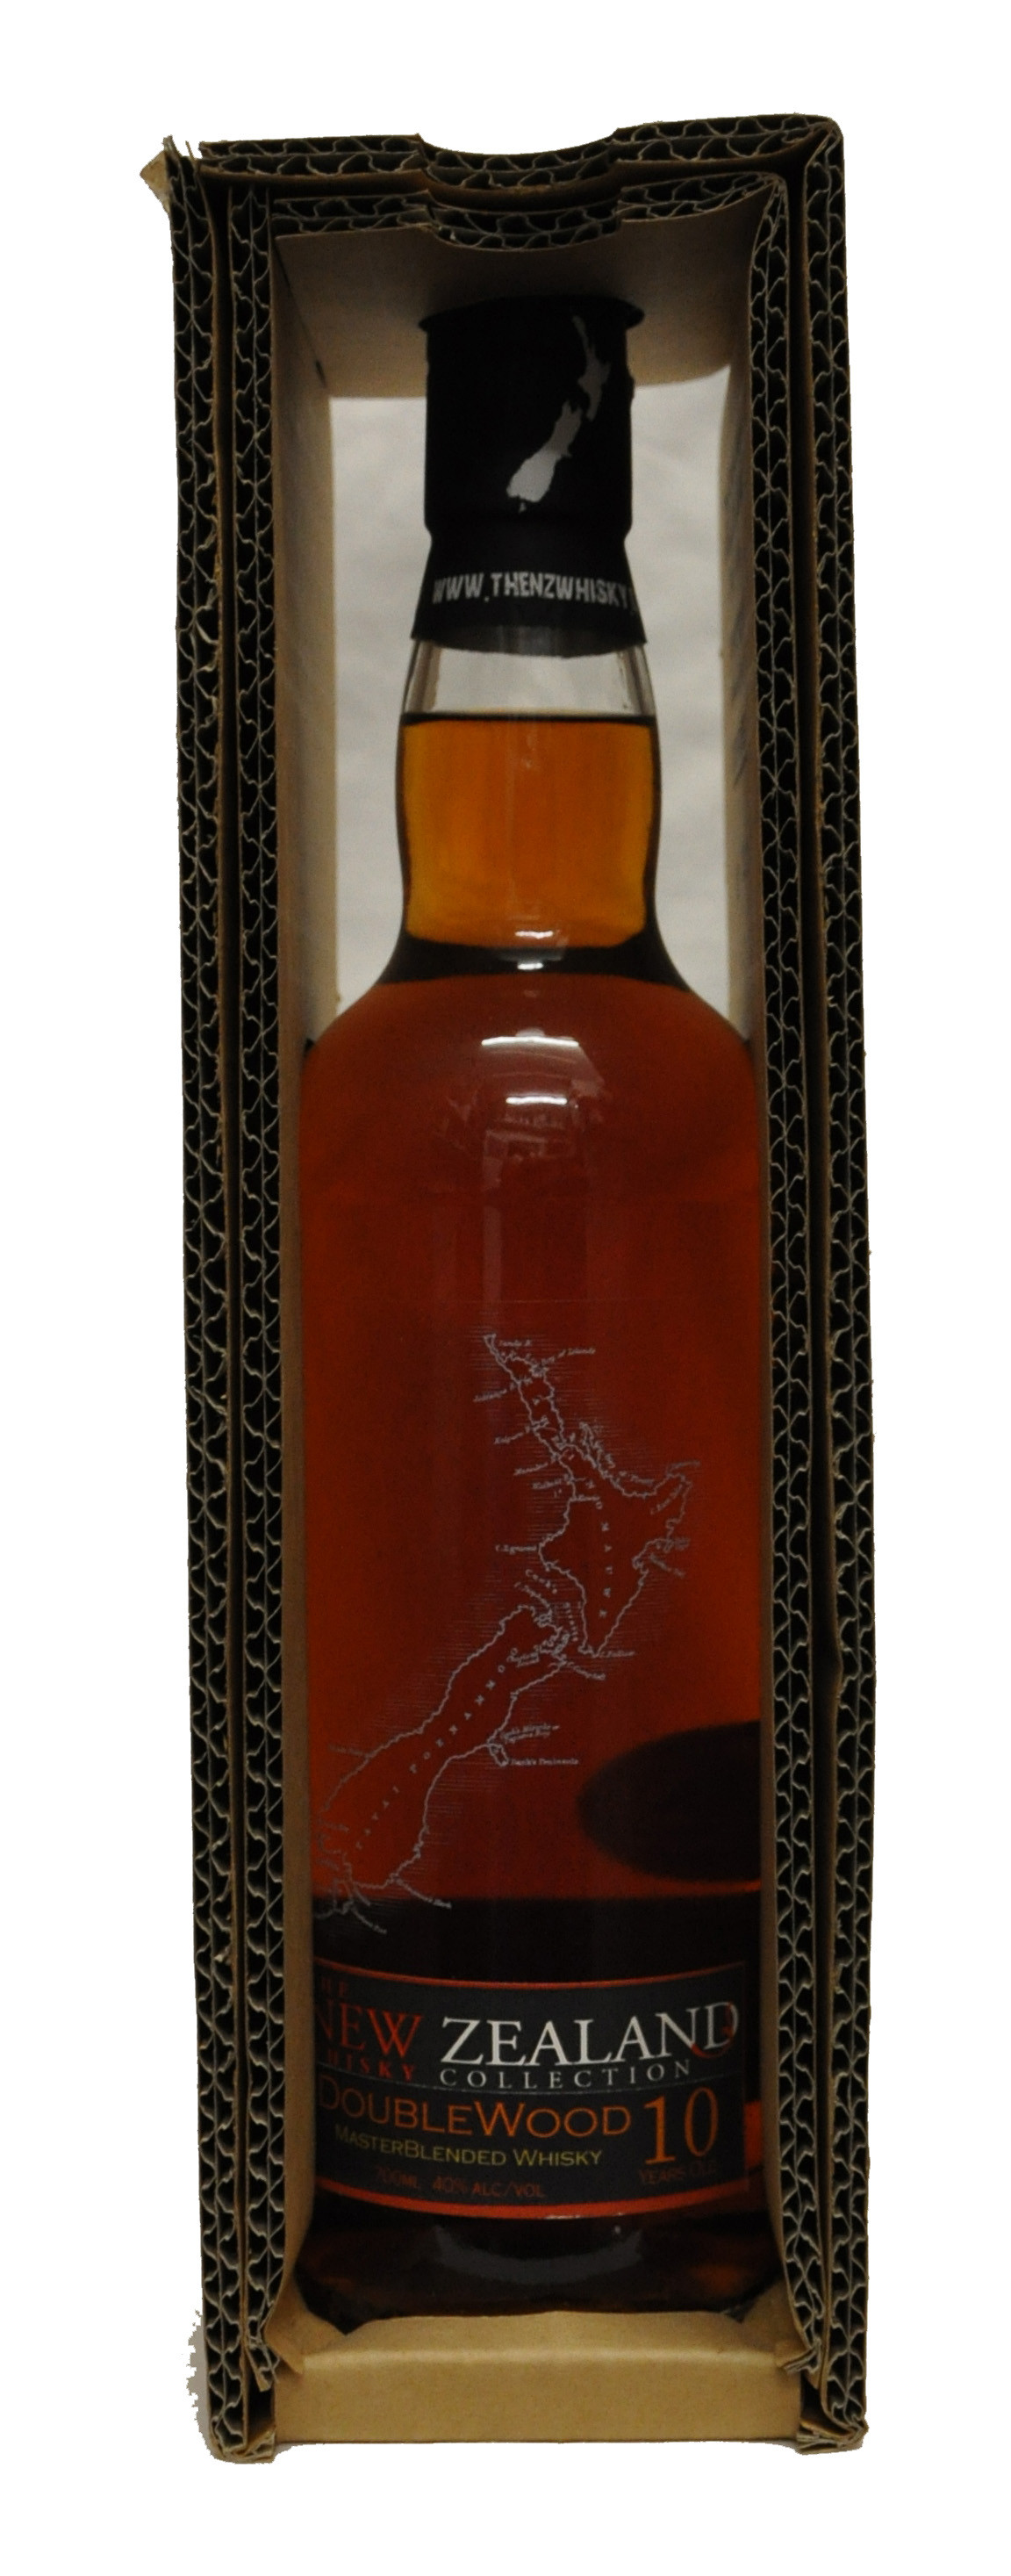 Doublewood 10 year old